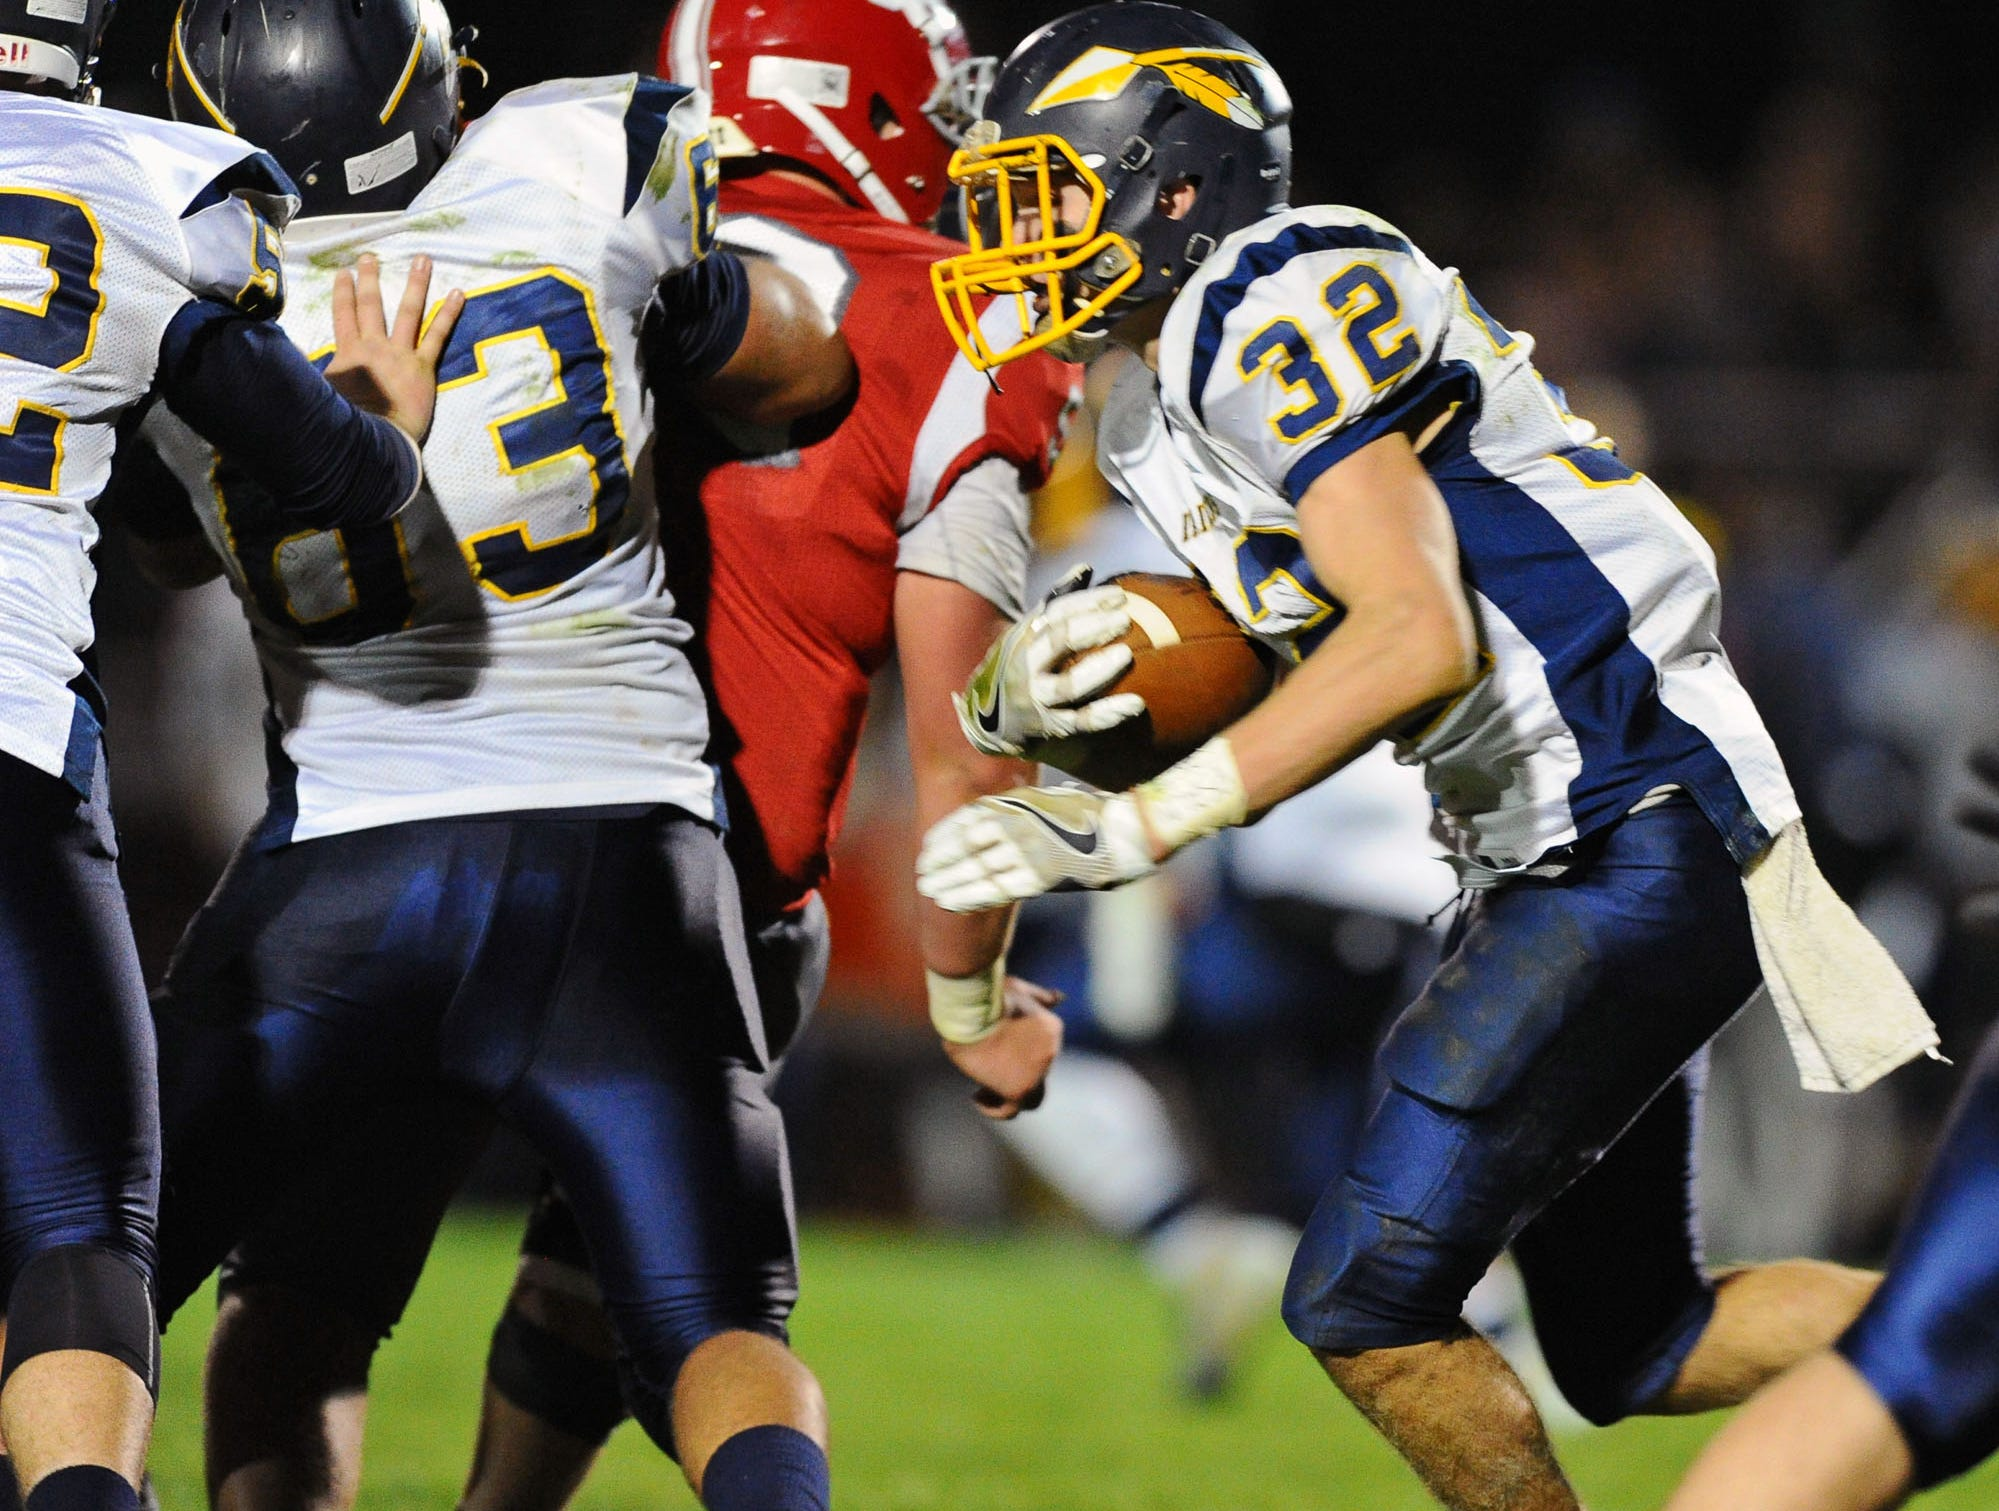 Elco RB Luke Williams(32) looks for running room during first half action.